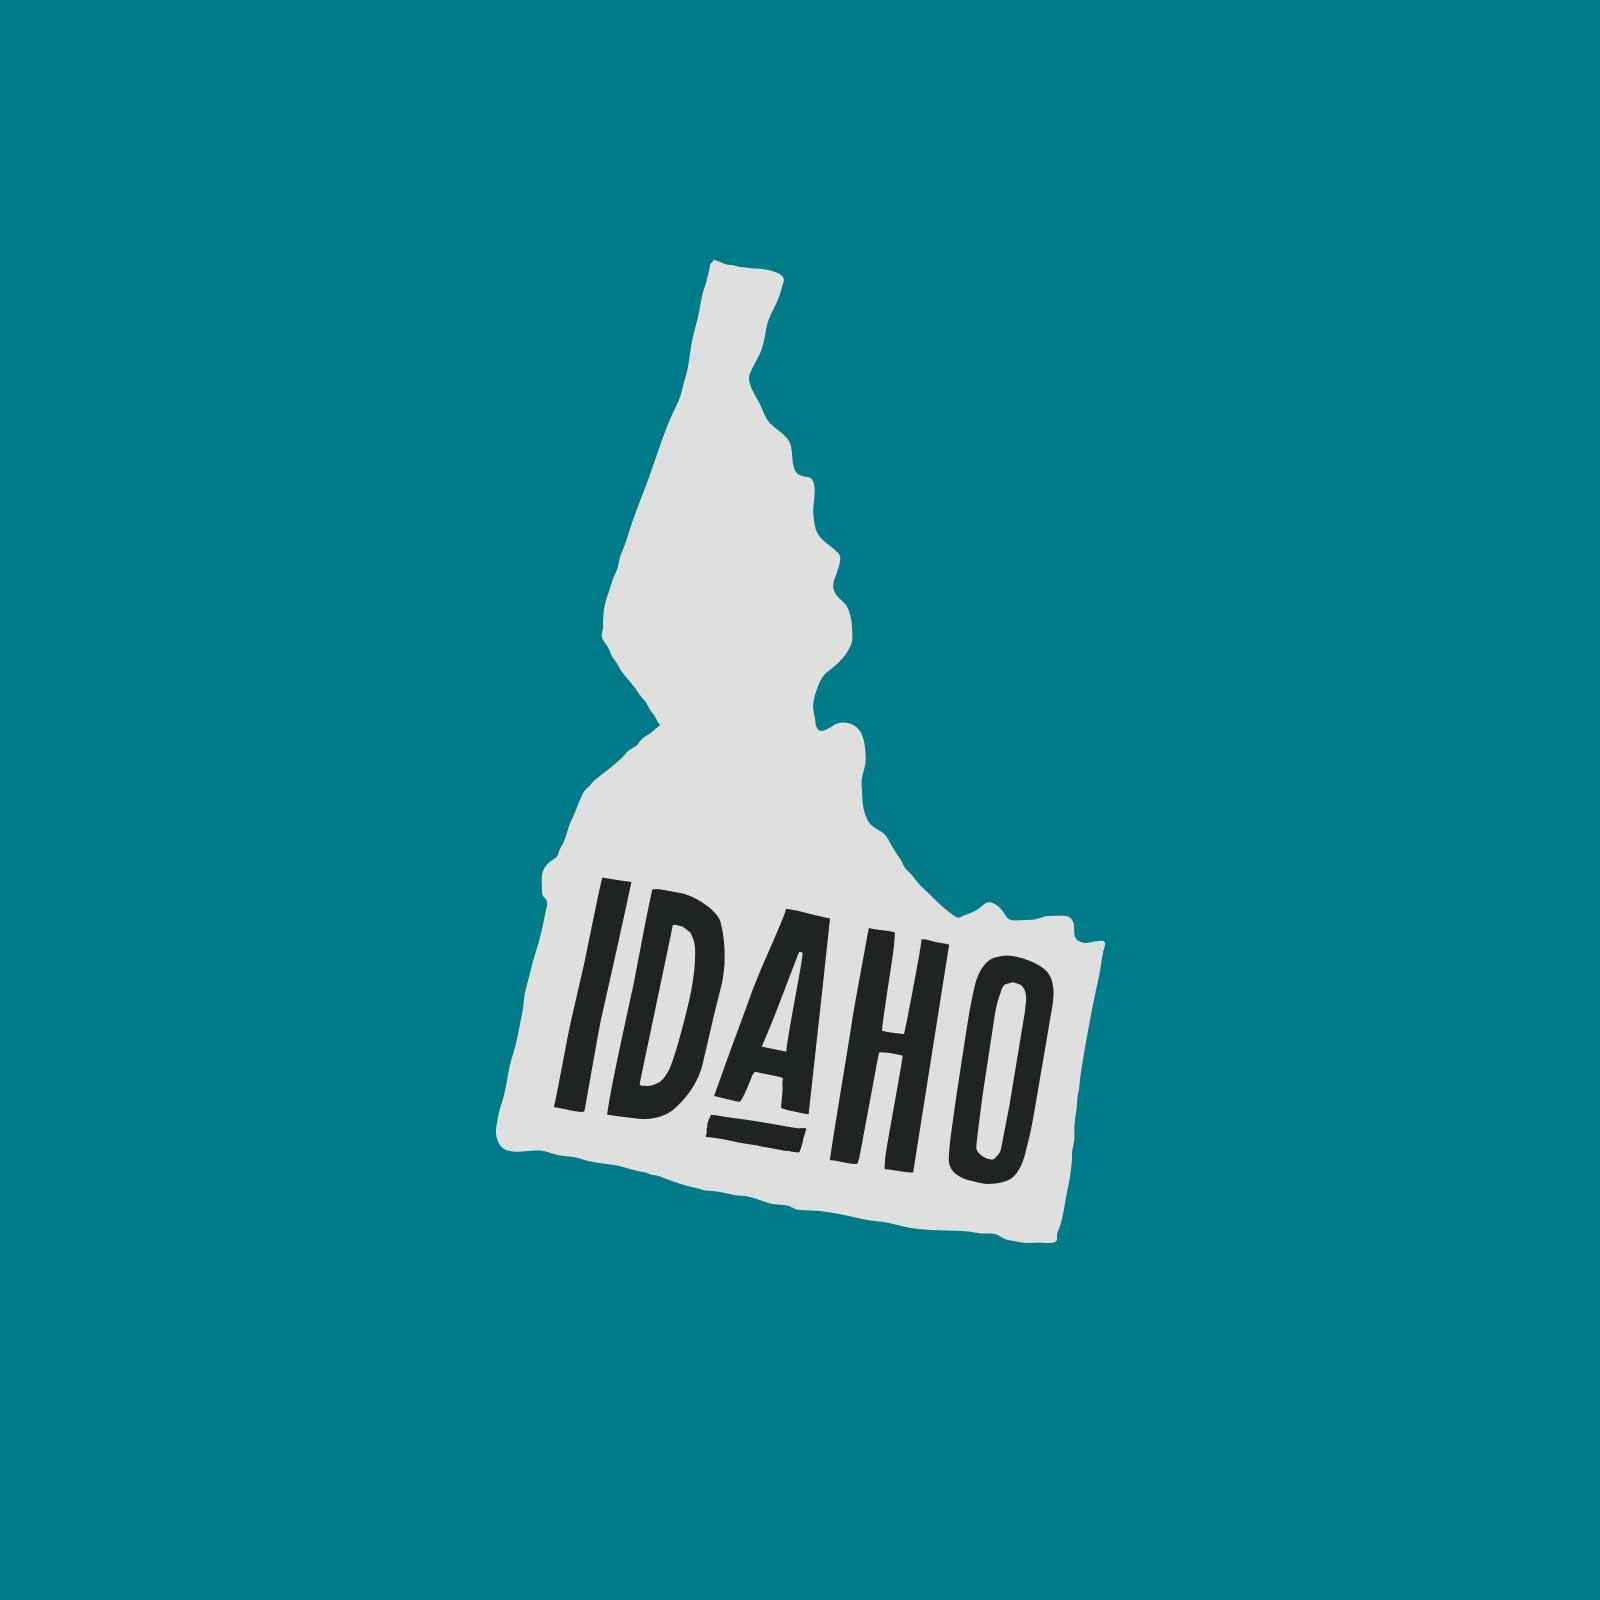 How to start a business in Idaho